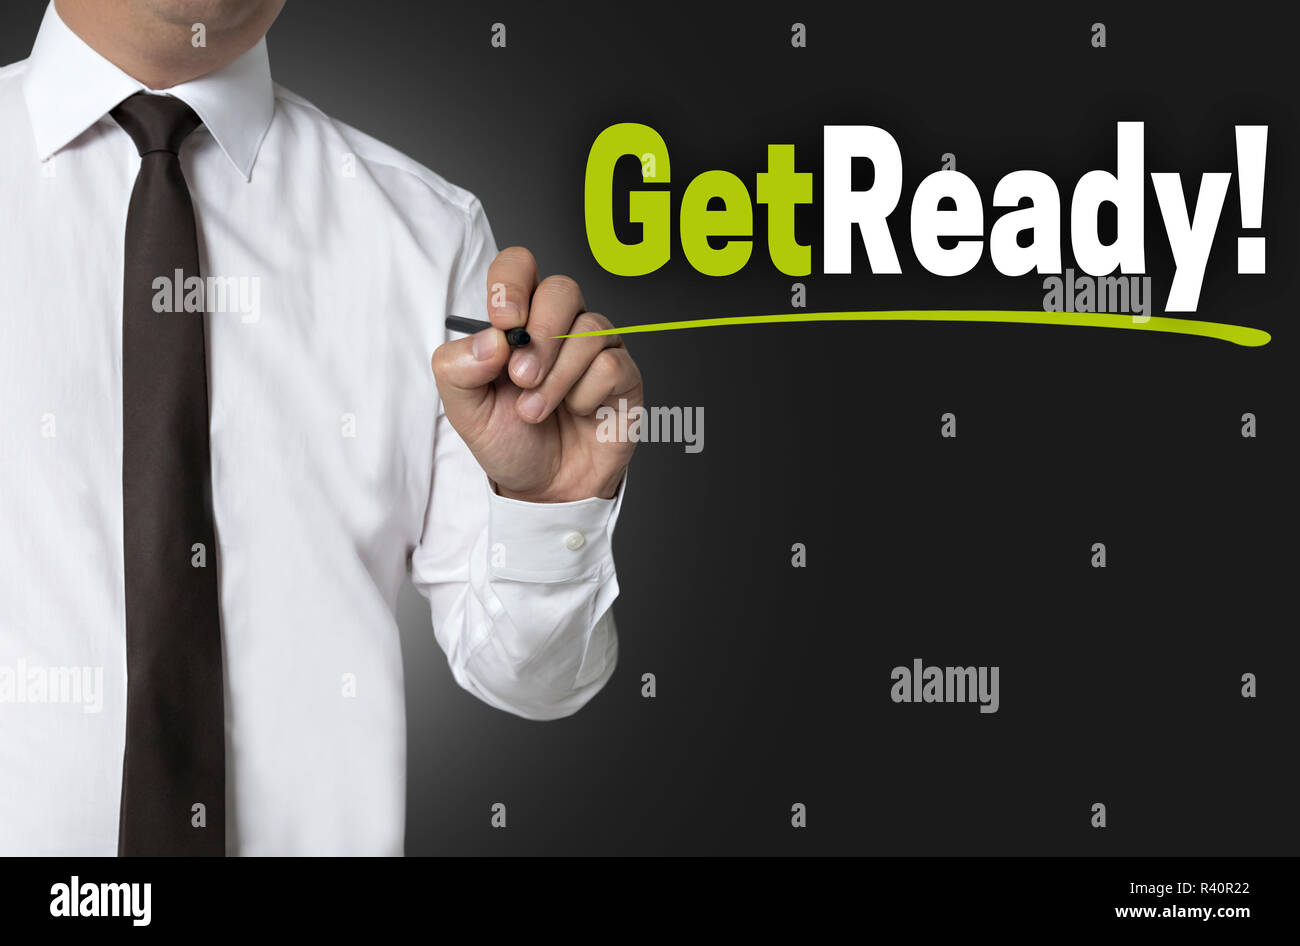 get ready is written by businessman background concept - Stock Image